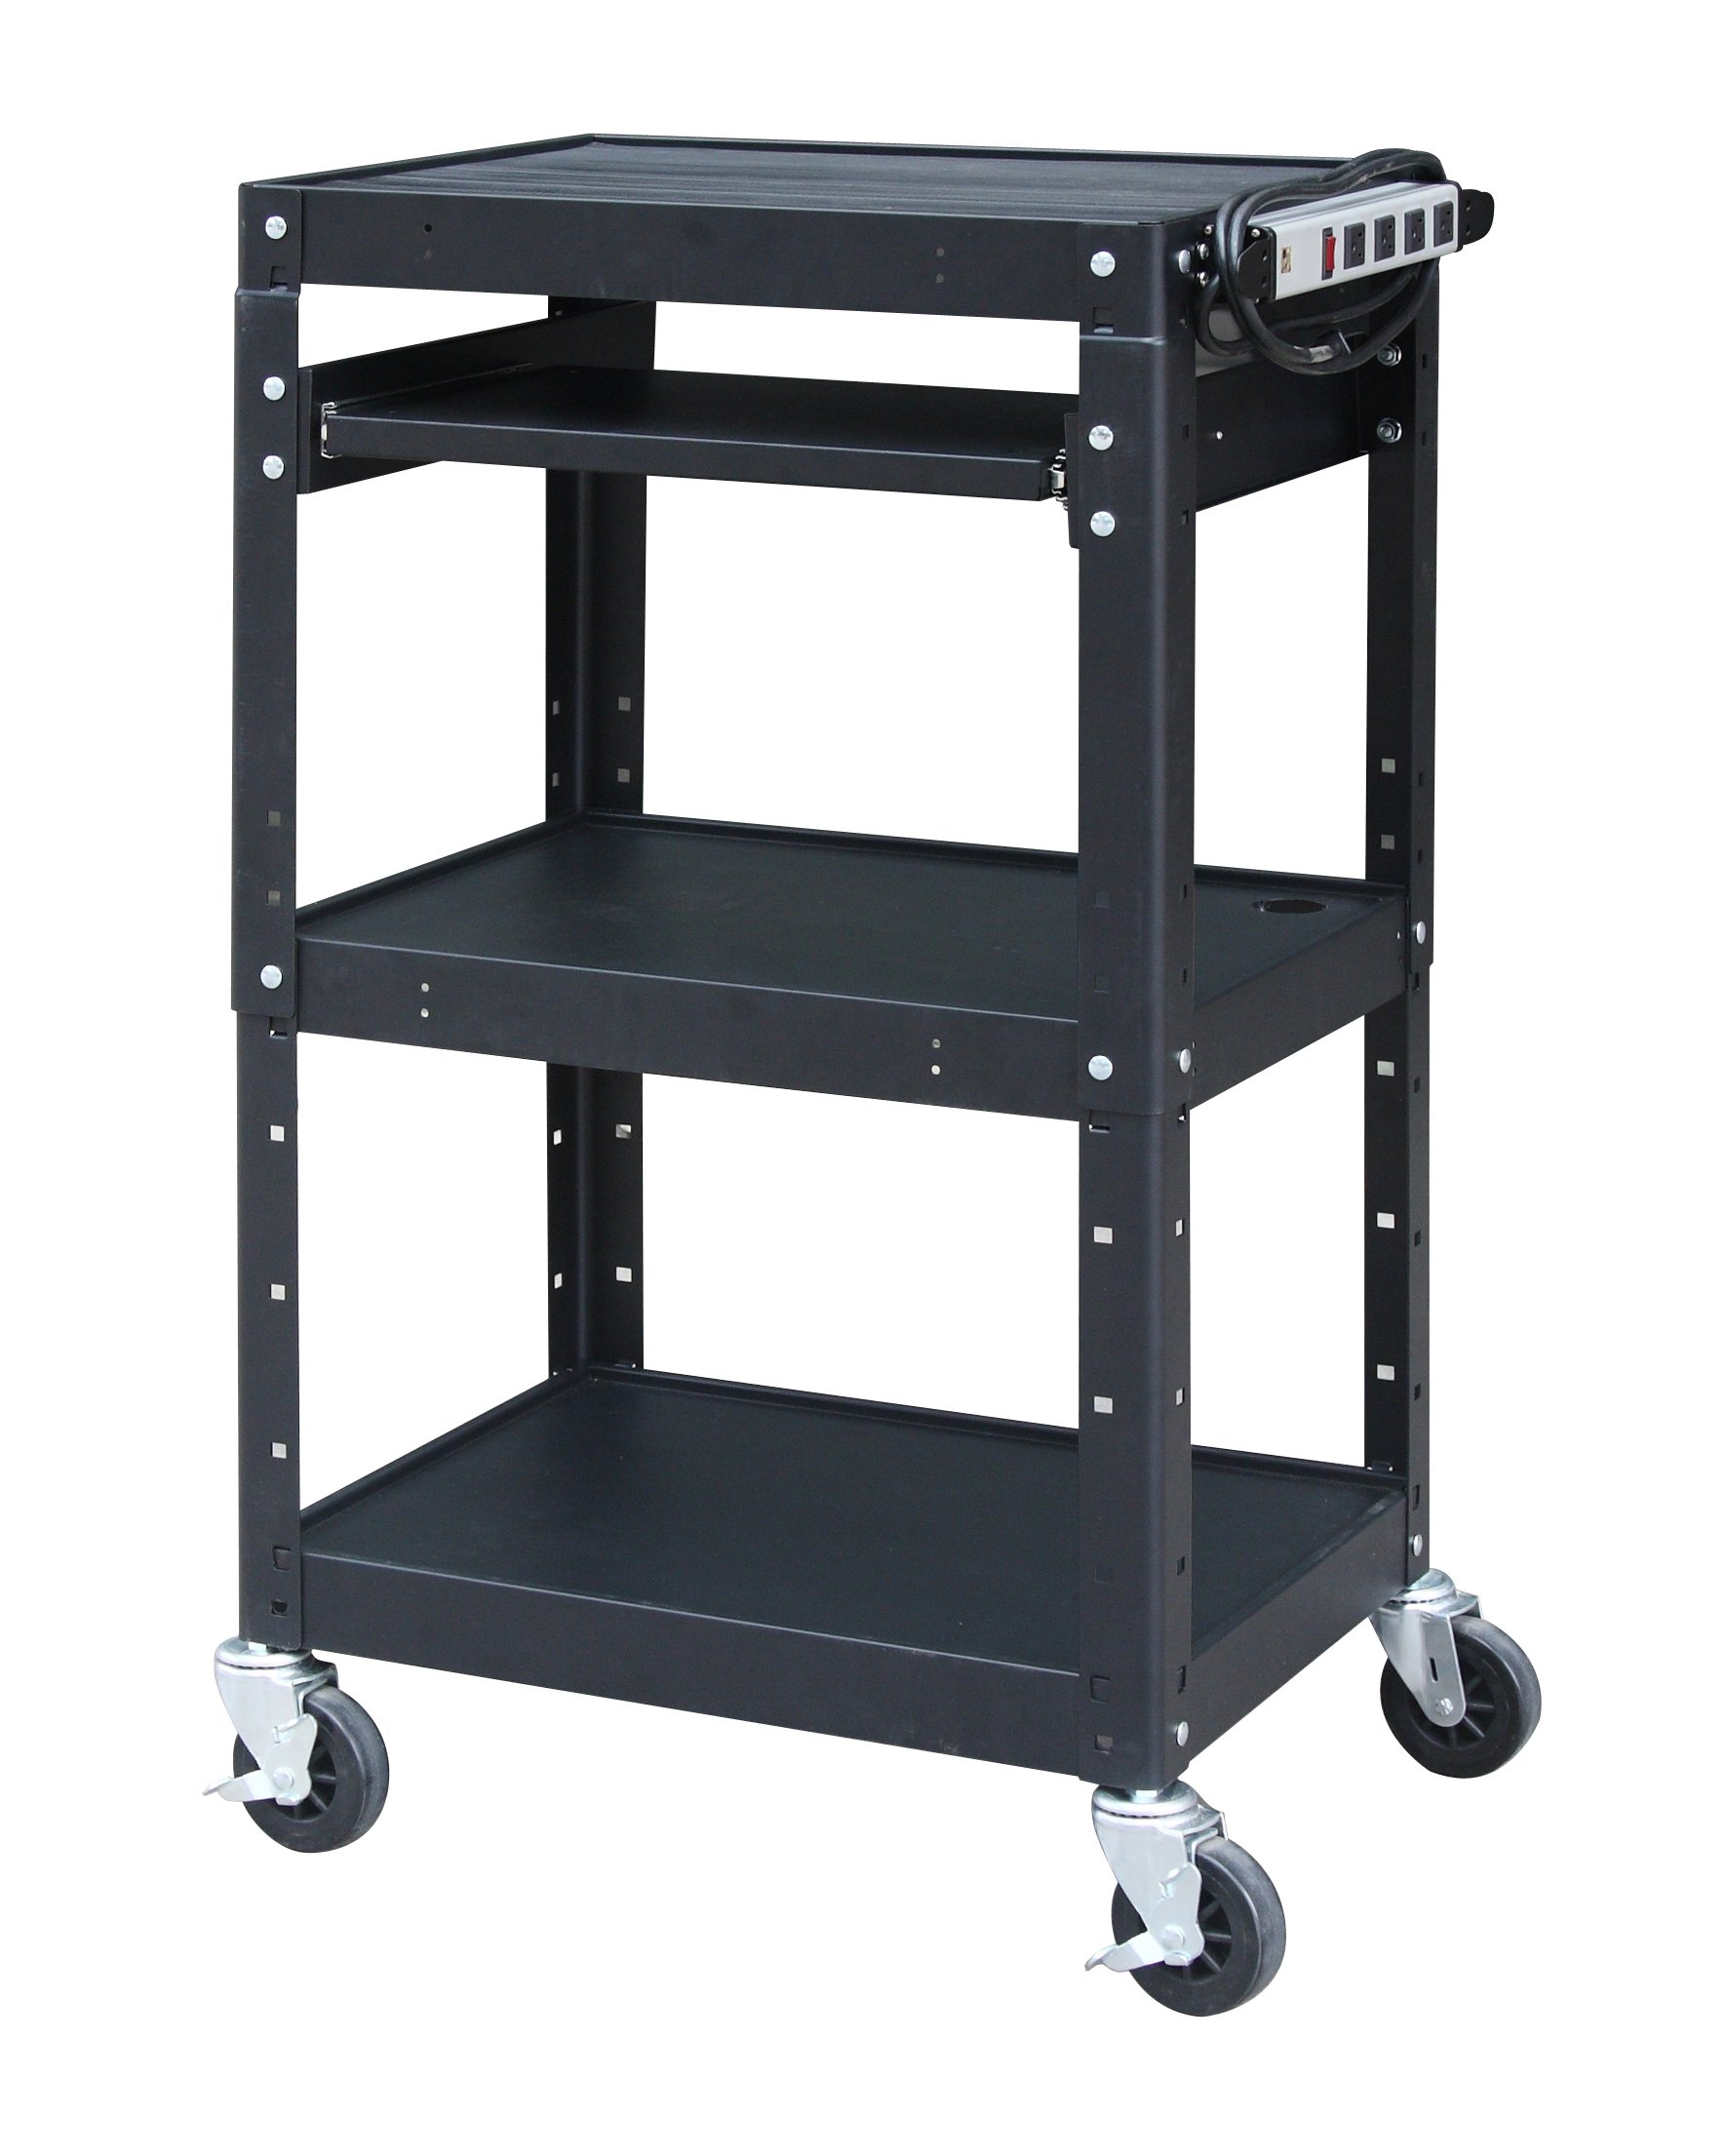 Pearington AV and presentation cart, Black, 42'' Height, 24'' Wide, 18'' Length